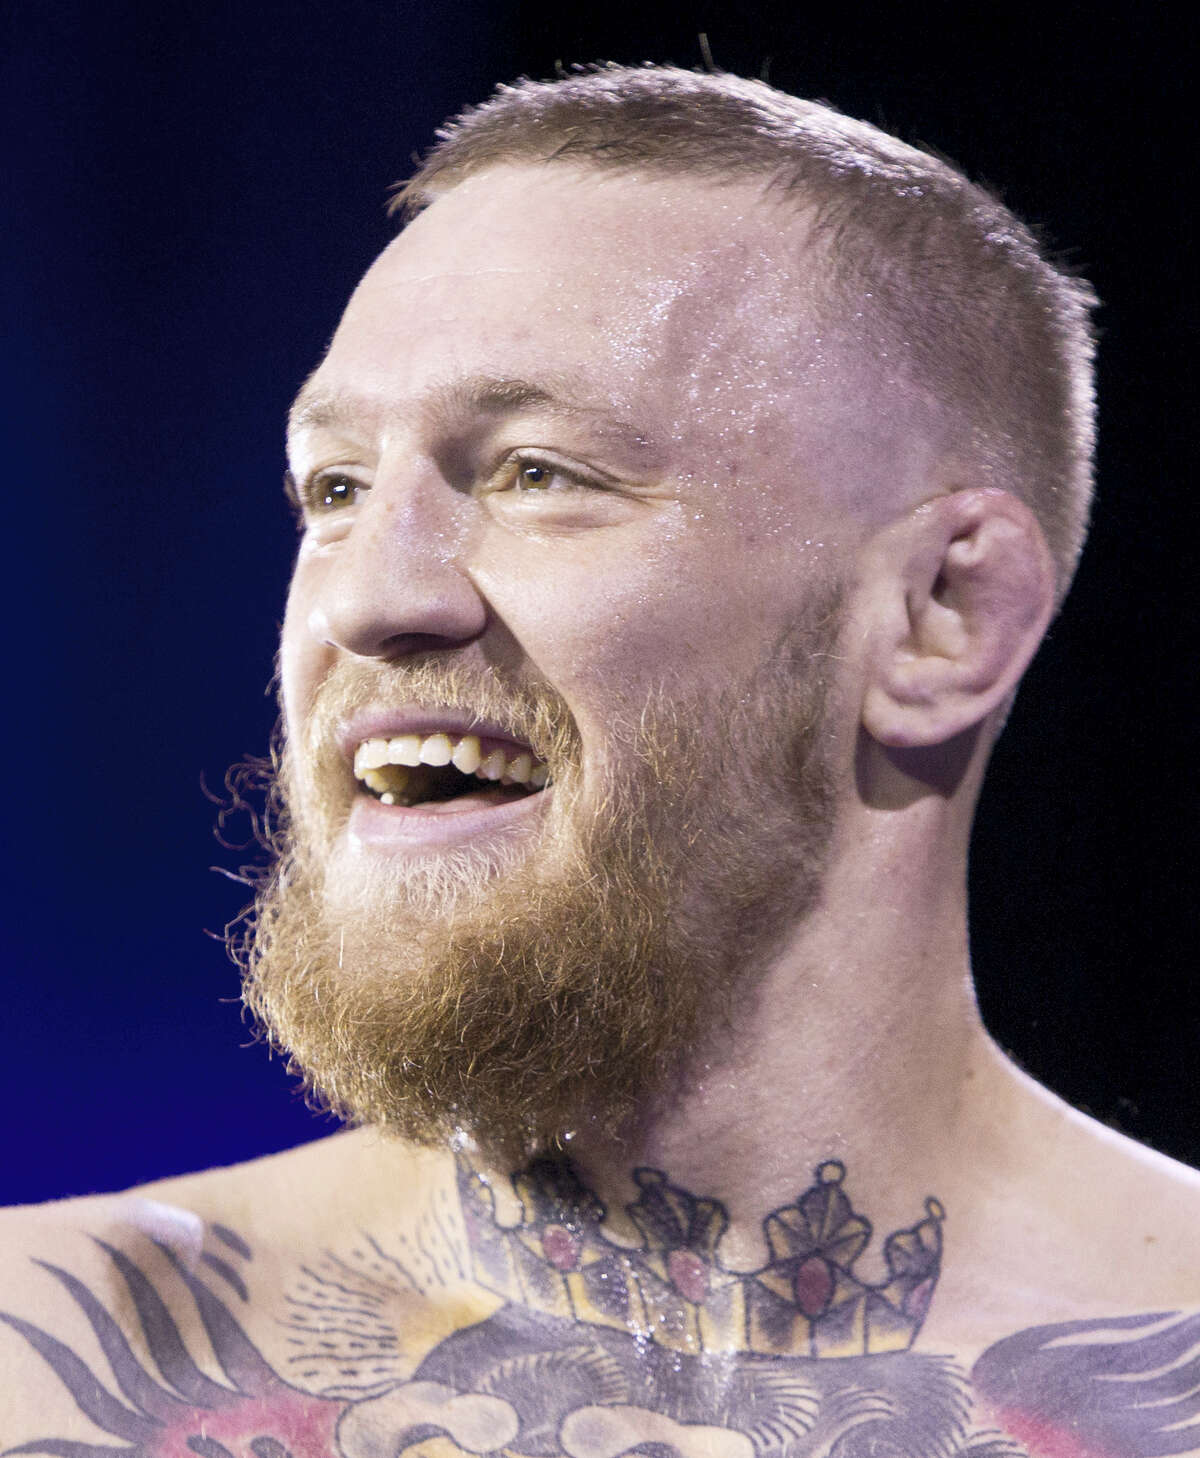 In this March 2, 2016 photo, UFC featherweight champion Conor McGregor smiles during open workouts at the MGM Grand in Las Vegas. McGregor has come to an agreement with UFC that has moved a proposed fight with Floyd Mayweather Jr. closer to reality.